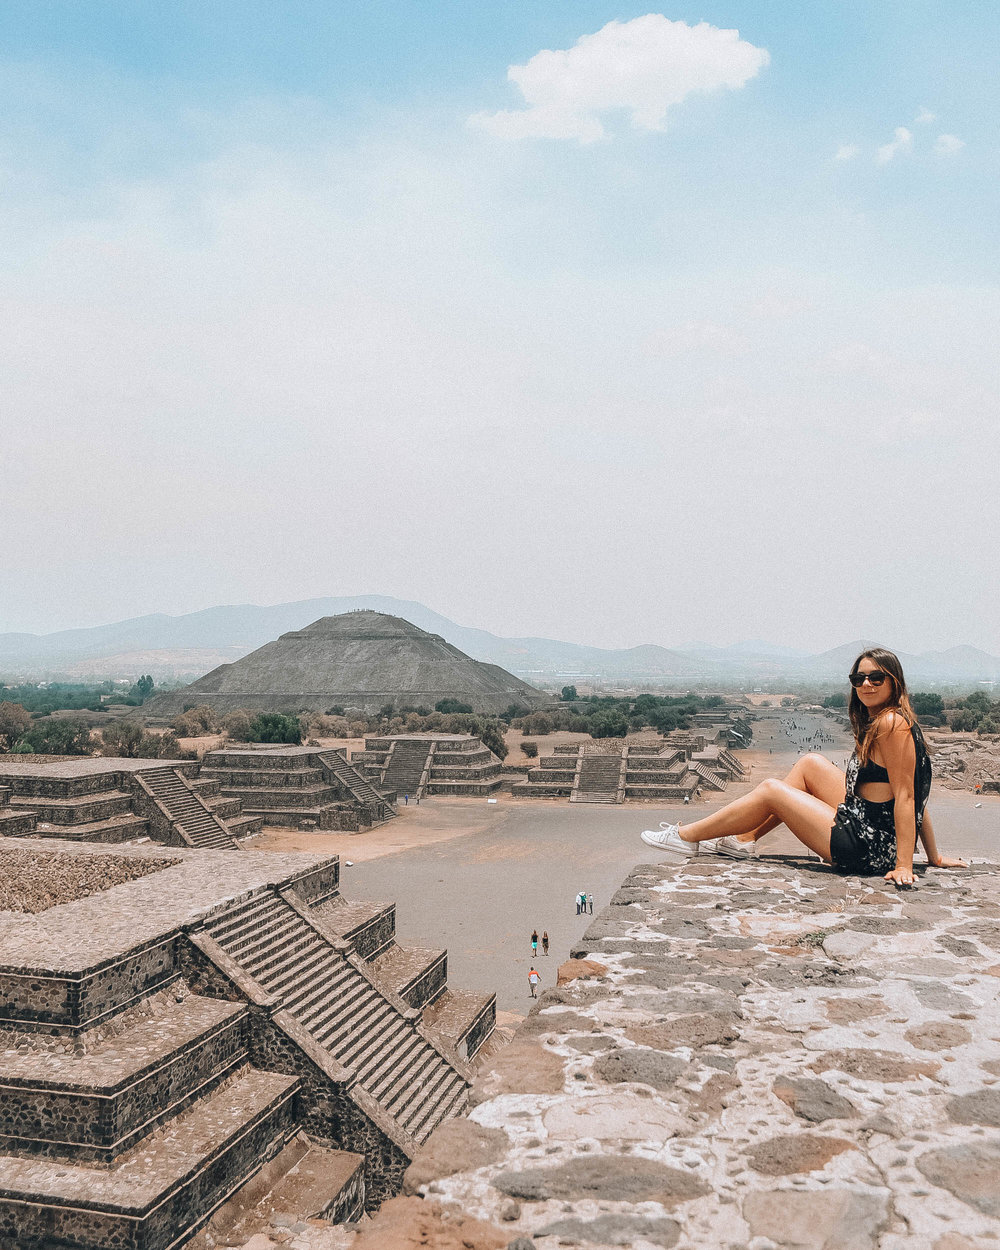 Teotihuacan Pyramids, Mexico